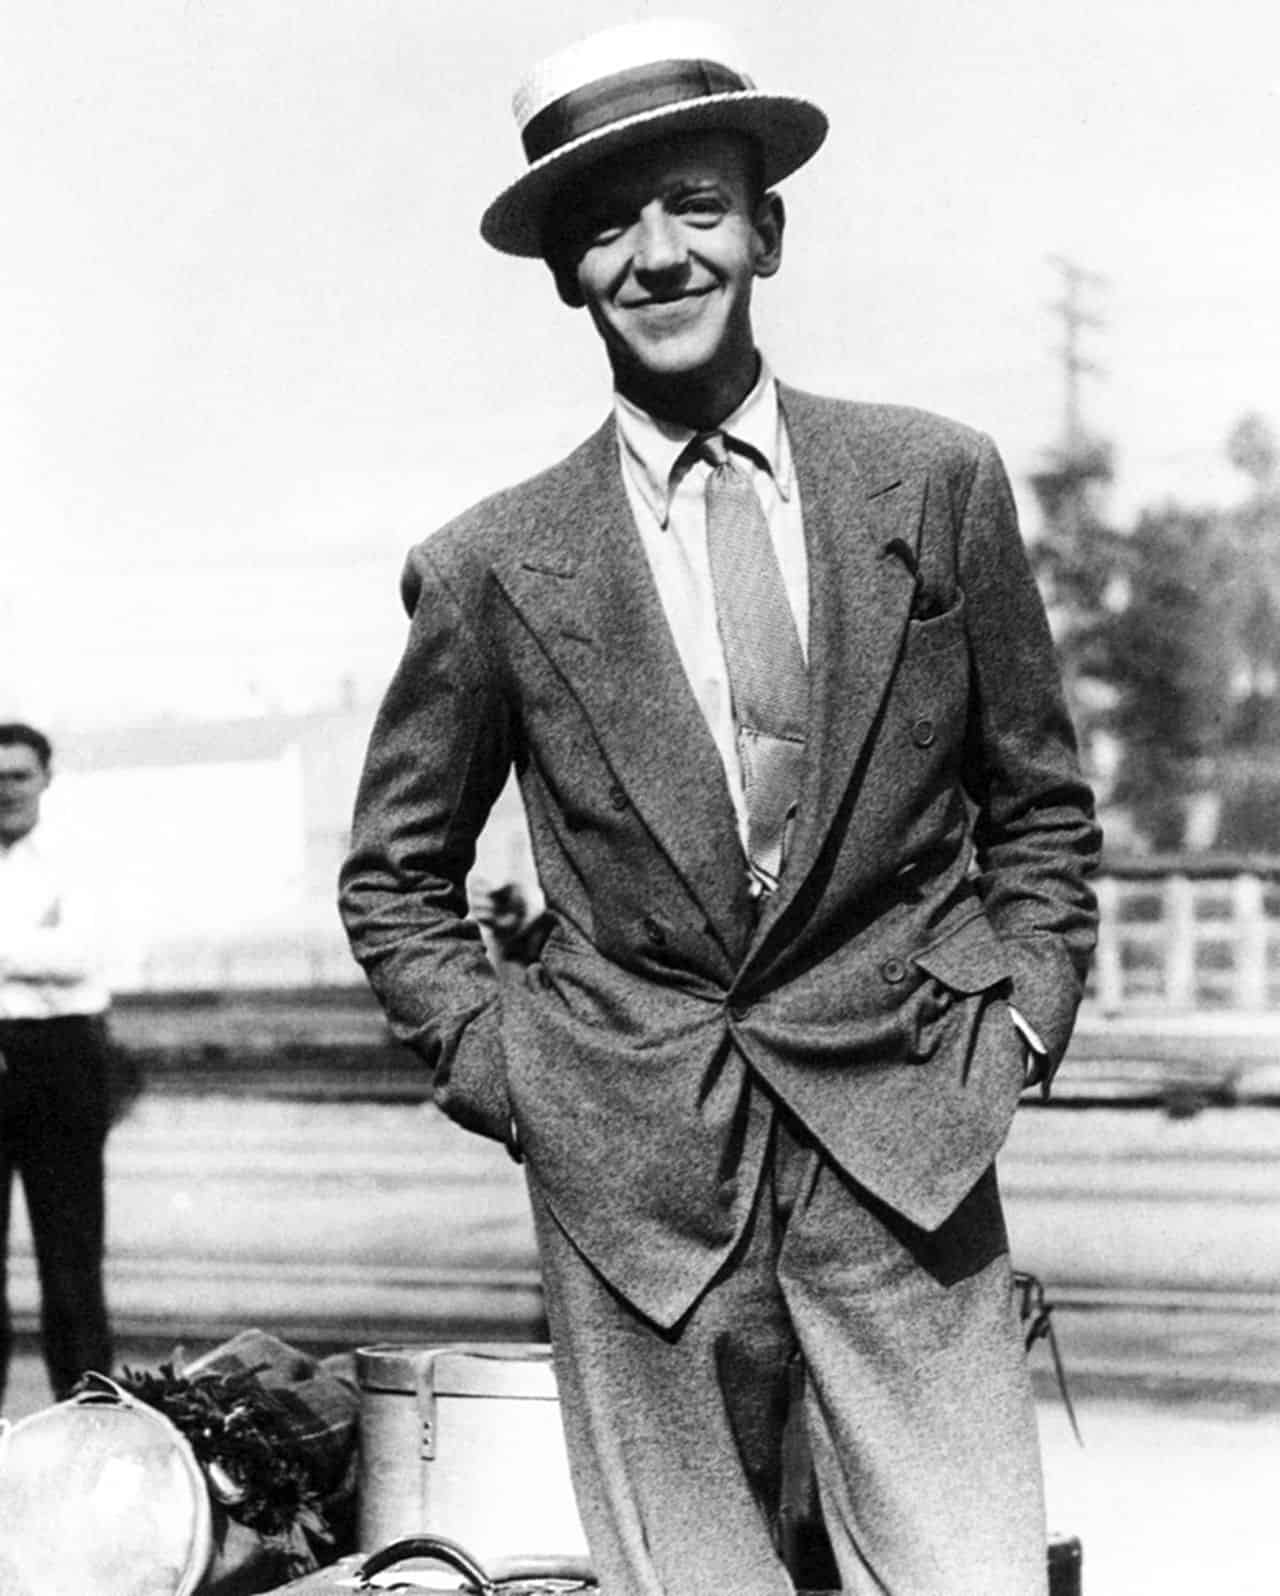 Fred Astaire with Boater and Tie Bar